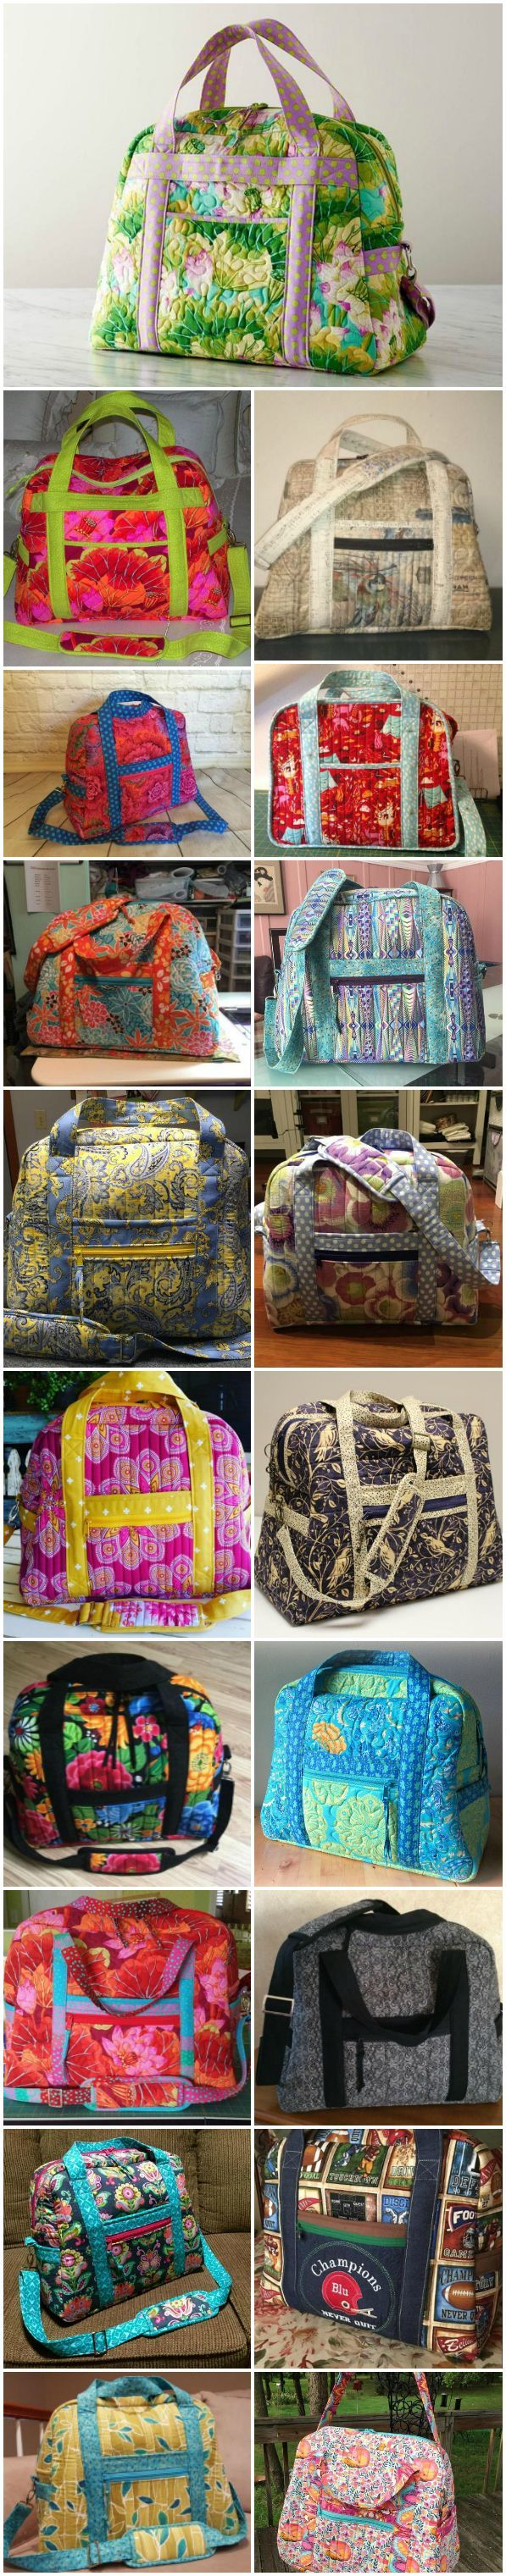 Learn how to sew the Ultimate Travel Bag.  So many great projects to check out.  Love this video class!